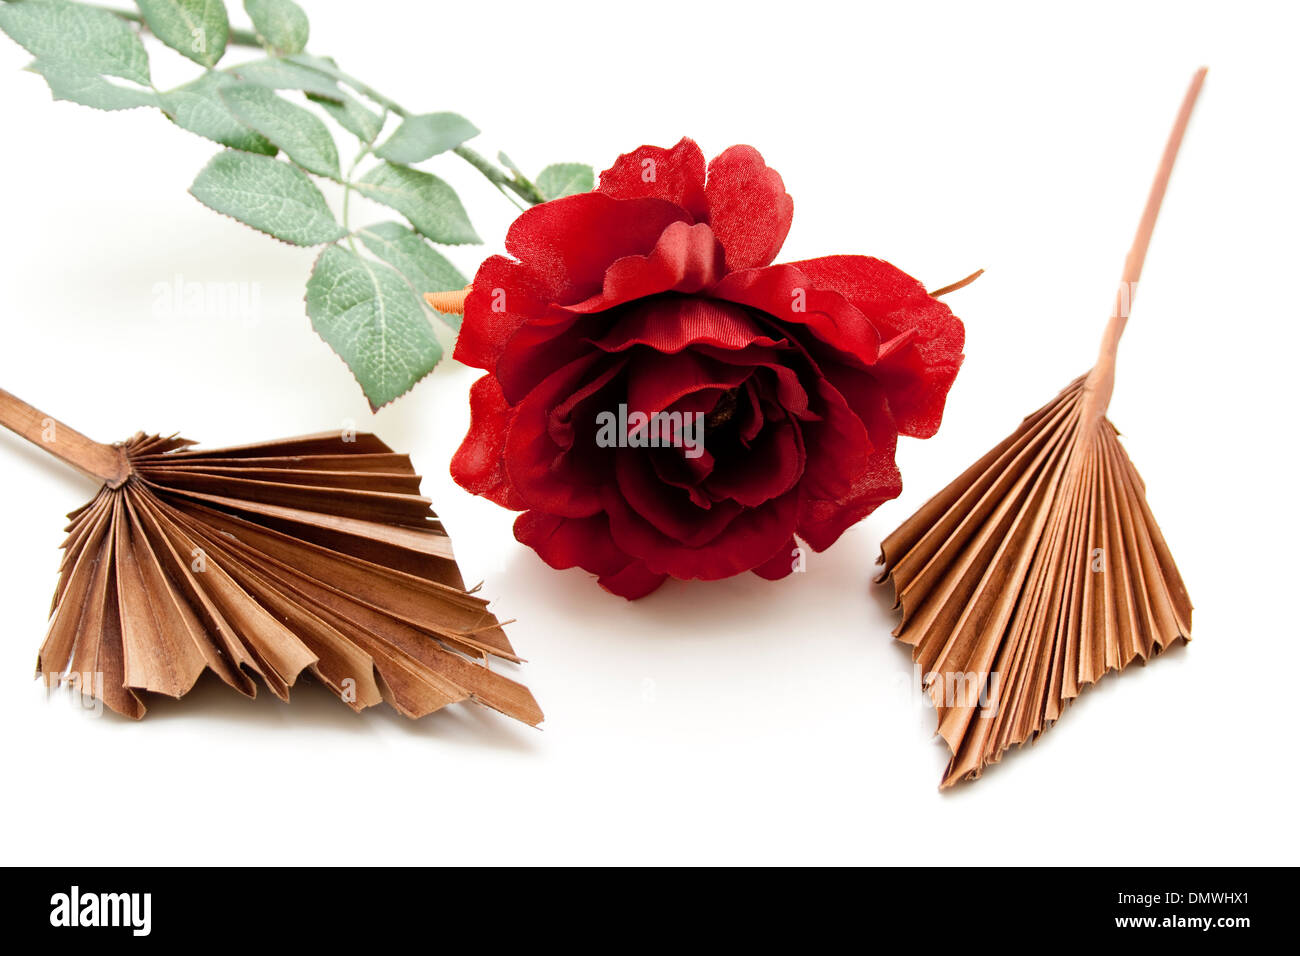 Red rose with wooden sheet - Stock Image